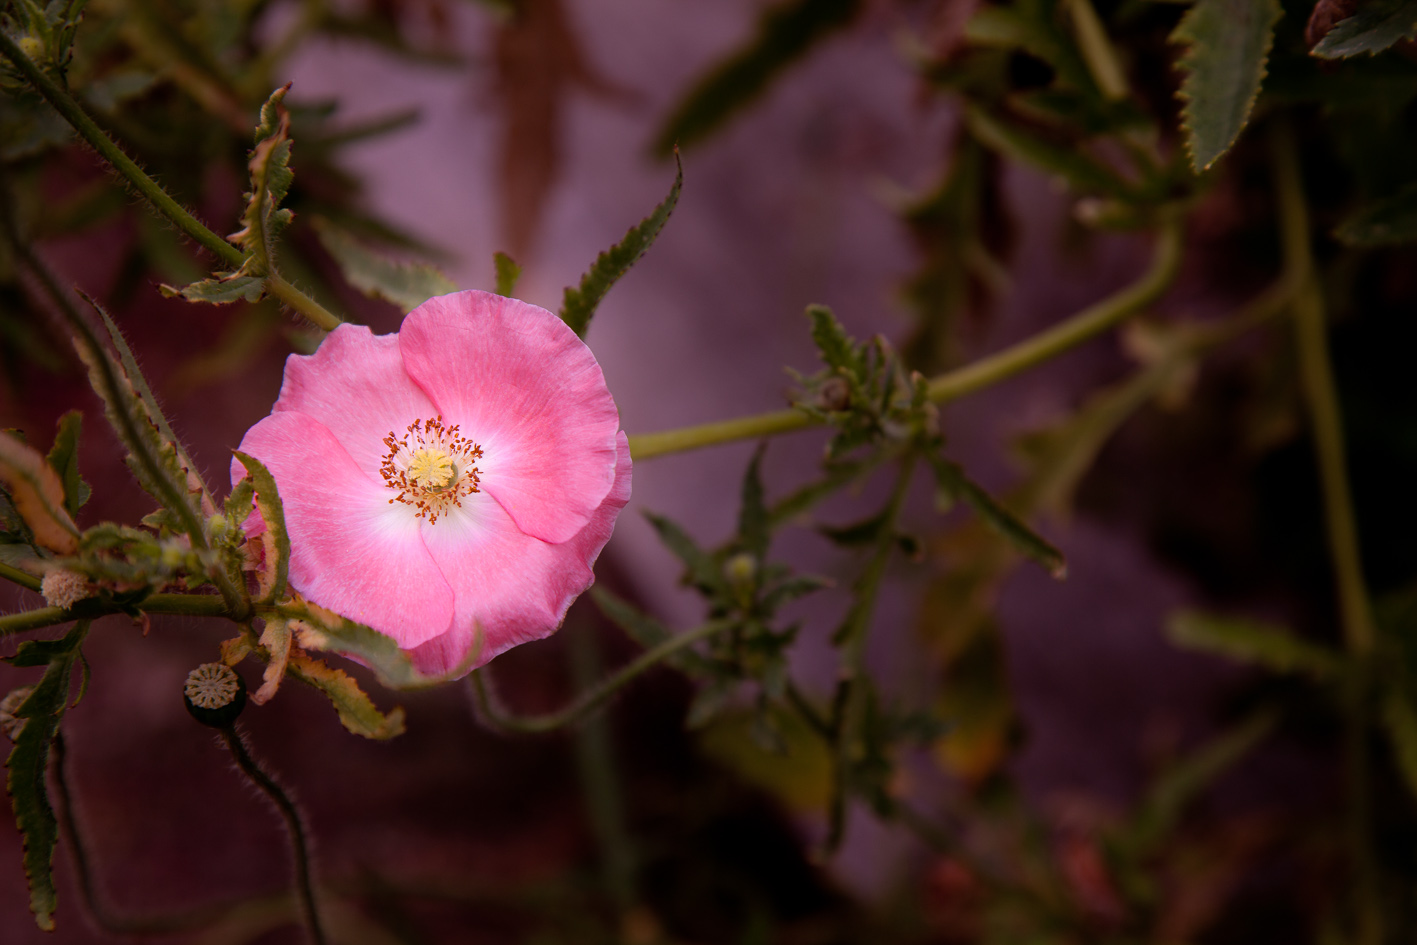 Rosa is the word for pink in Italian.